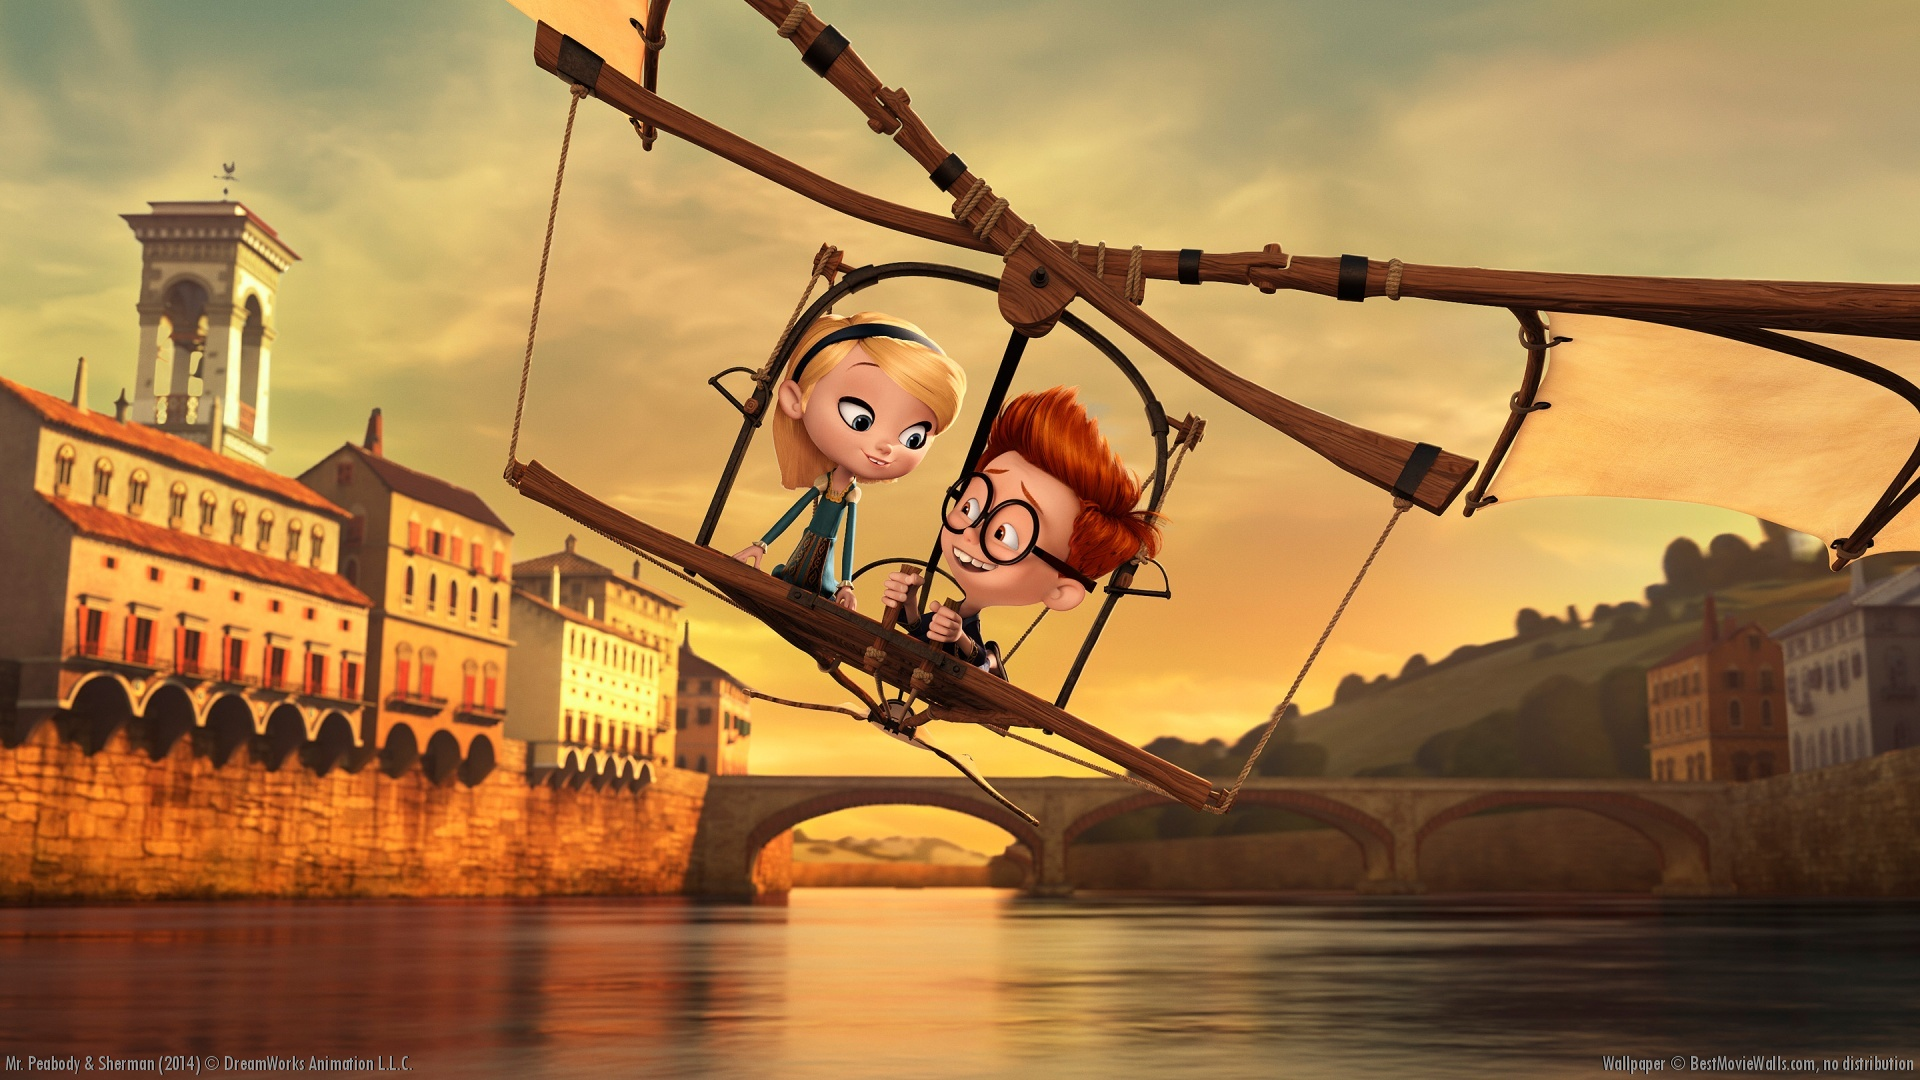 Penny (voiced by Ariel Winter) and Sherman (voiced by Max Charles) take a ride on Leonardo Da Vinci's flying machine in Mr. Peabody & Sherman (2014)